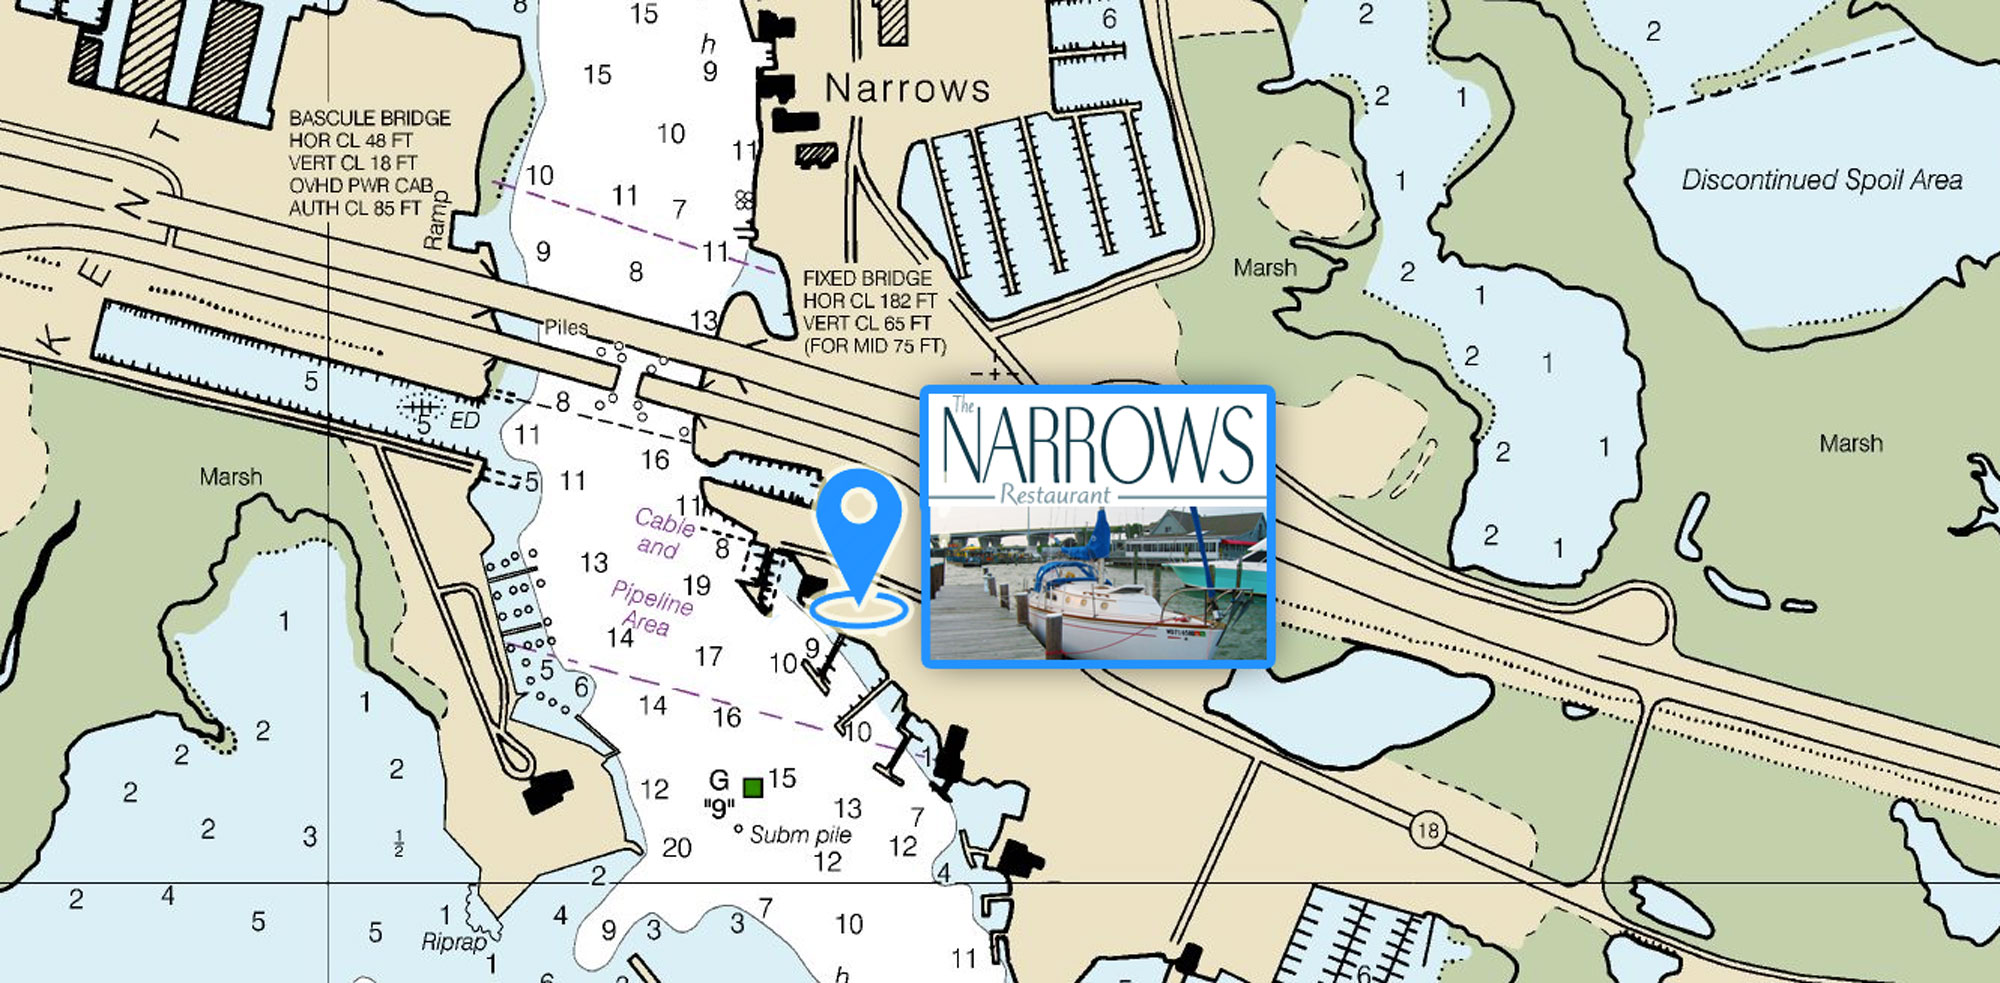 Free Docking for The Narrows Restaurant Guests